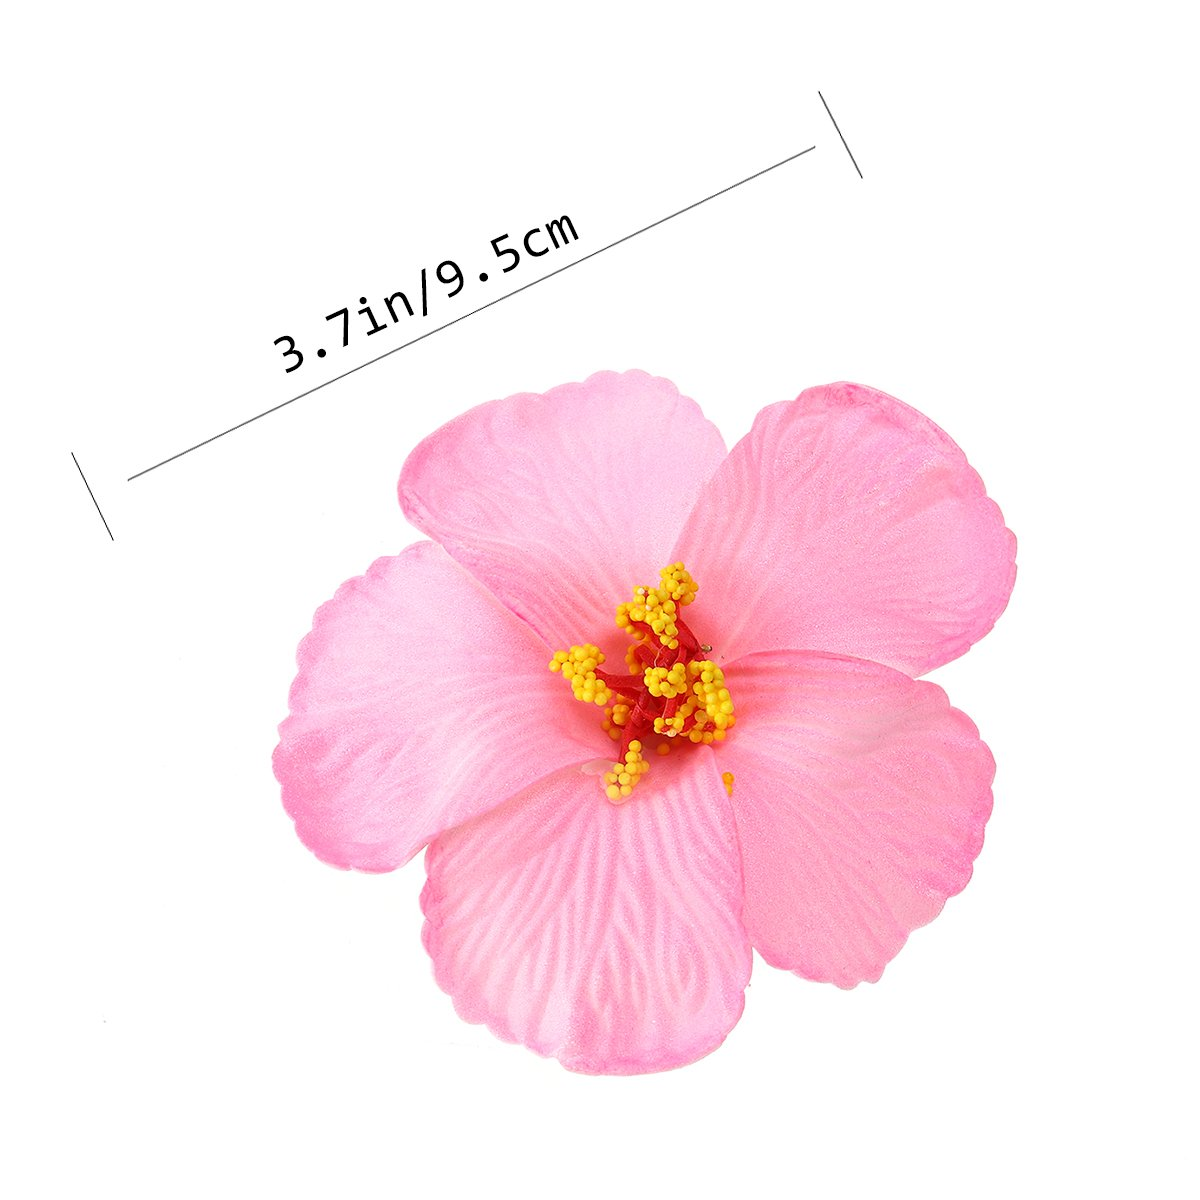 Amazon tinksky 1 pc hibiscus flowers hawaiian flowers amazon tinksky 1 pc hibiscus flowers hawaiian flowers artificial flowers for tabletop decoration party favors supplies wedding luau hawaii party izmirmasajfo